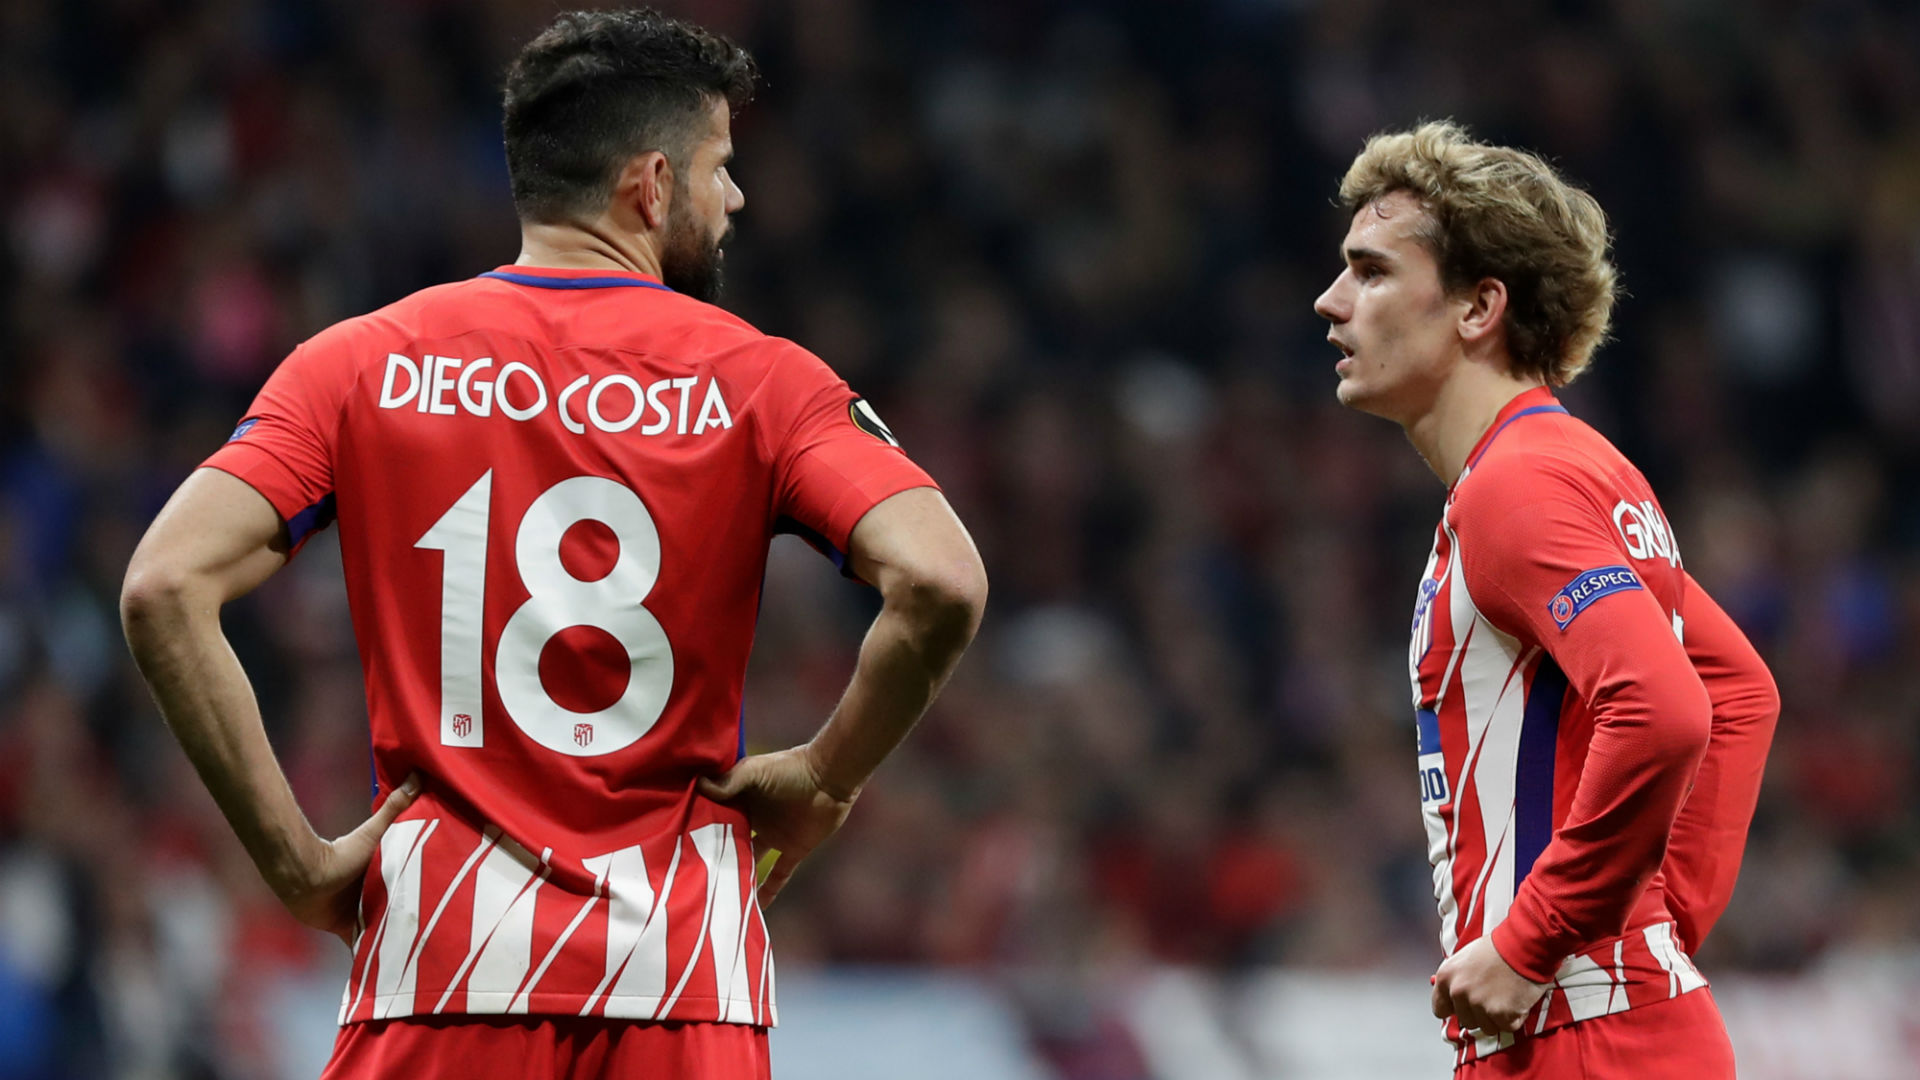 Atletico 'fed up' over Barca's pursuit of Griezmann